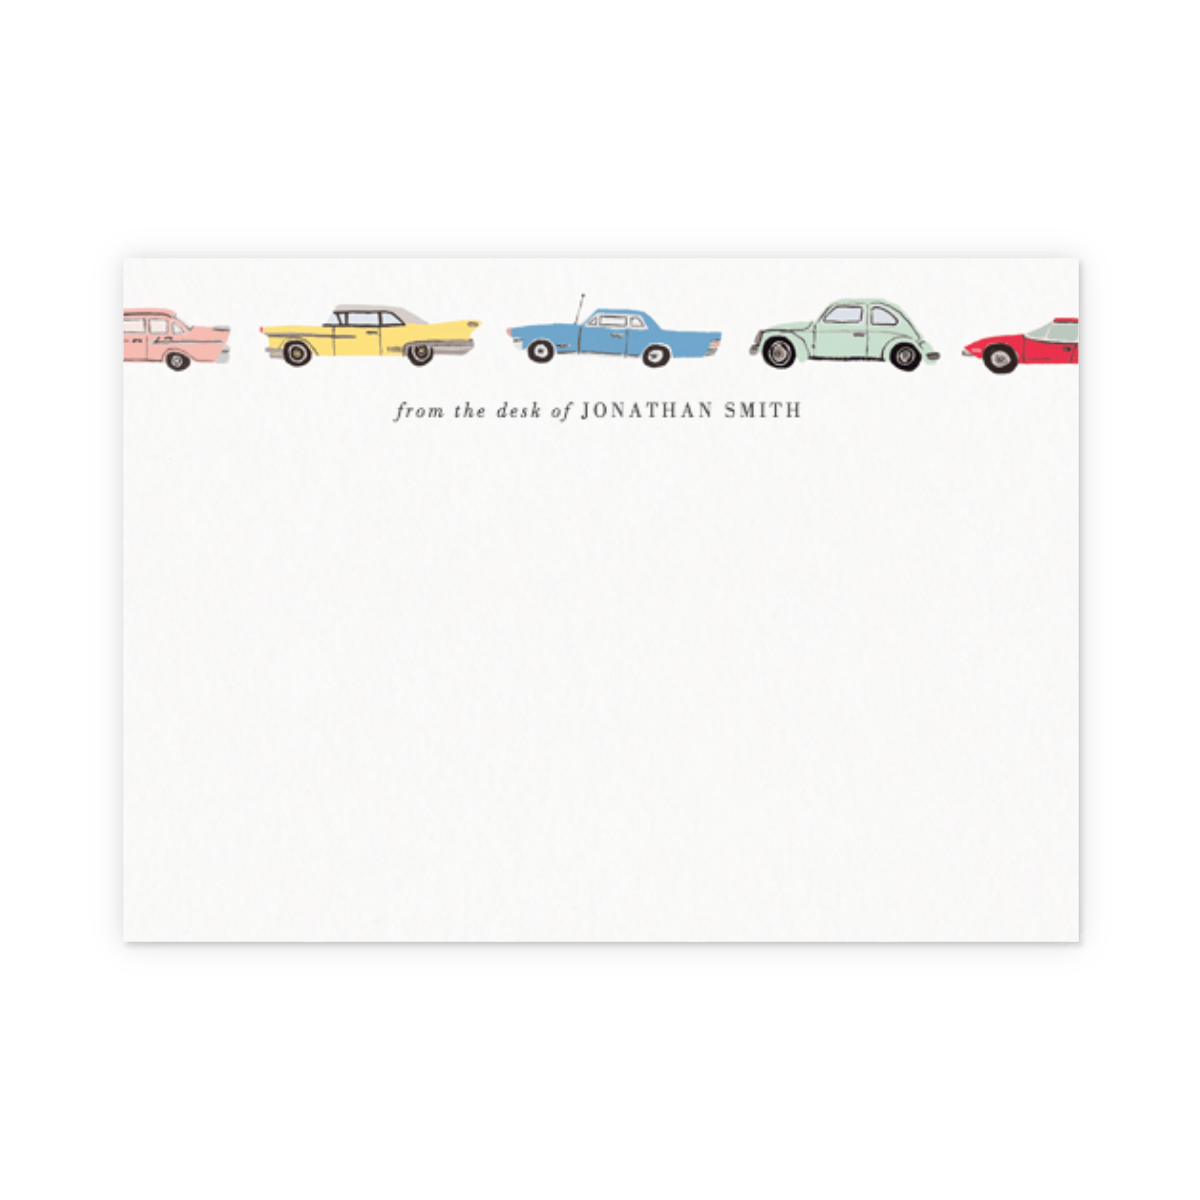 Https%3a%2f%2fwww.papier.com%2fproduct image%2f27971%2f10%2fvintage cars 6989 front 1534935126.png?ixlib=rb 1.1